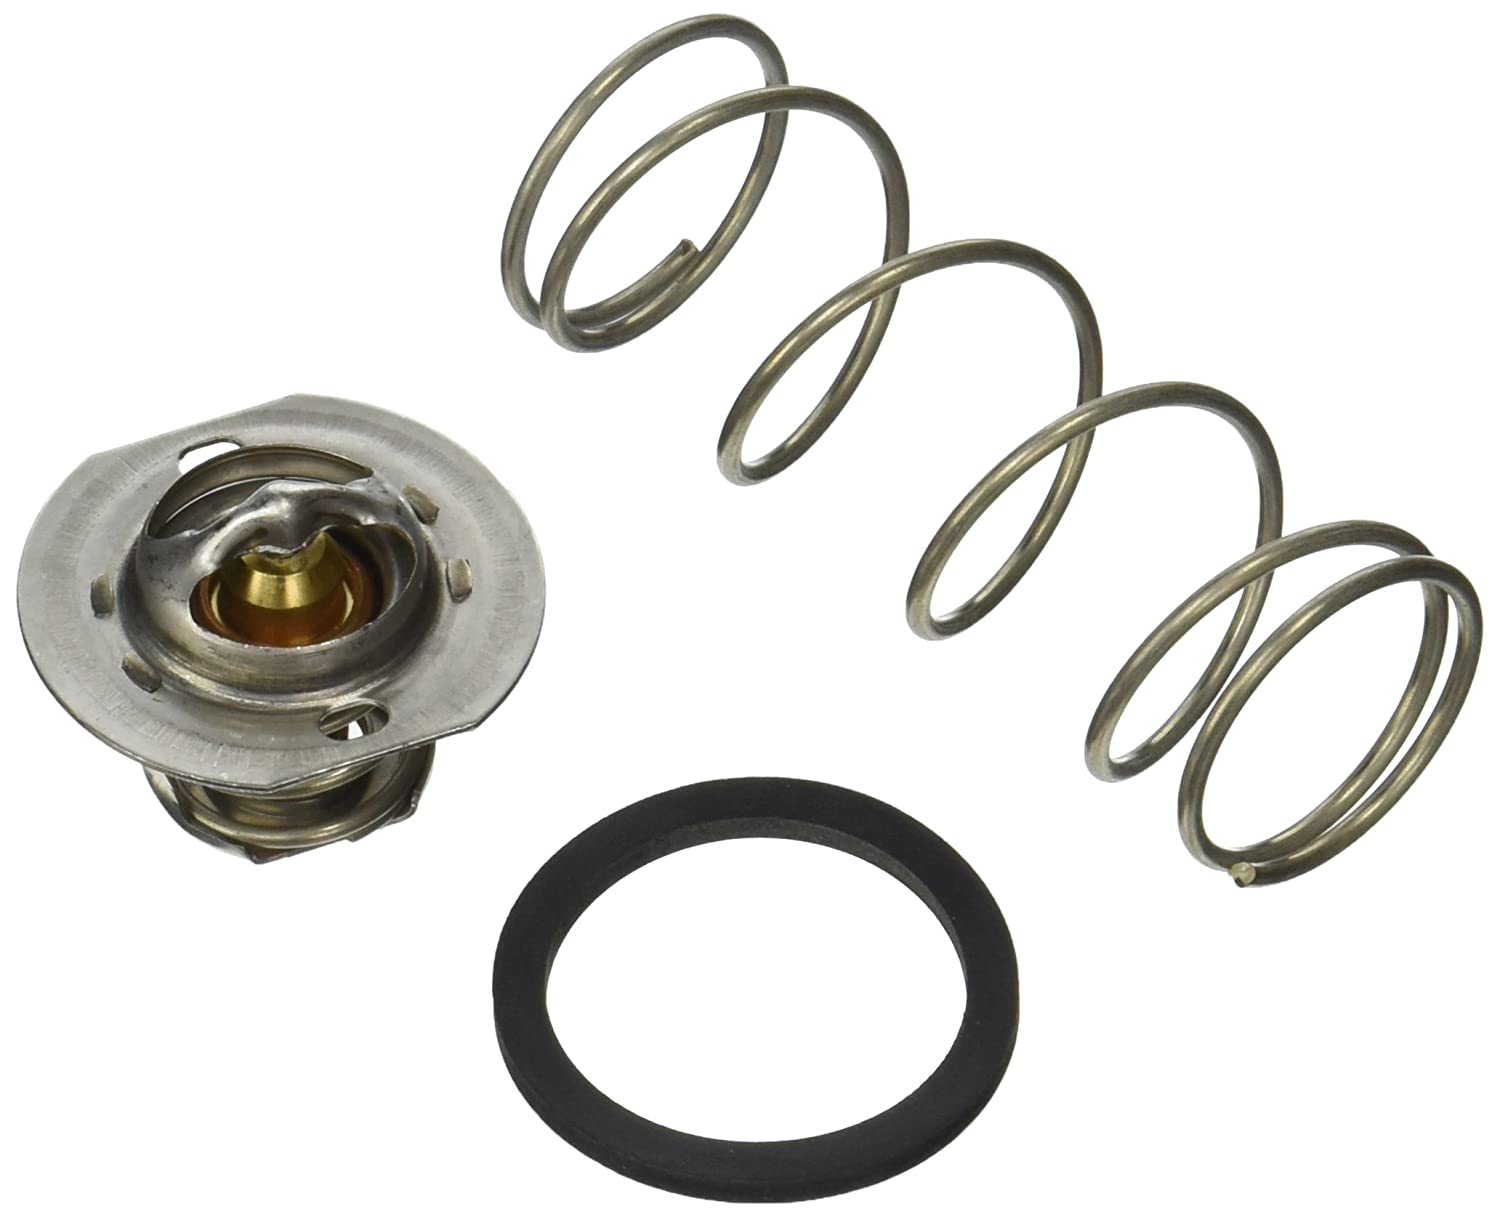 Pool Heater Parts Amp Accessories